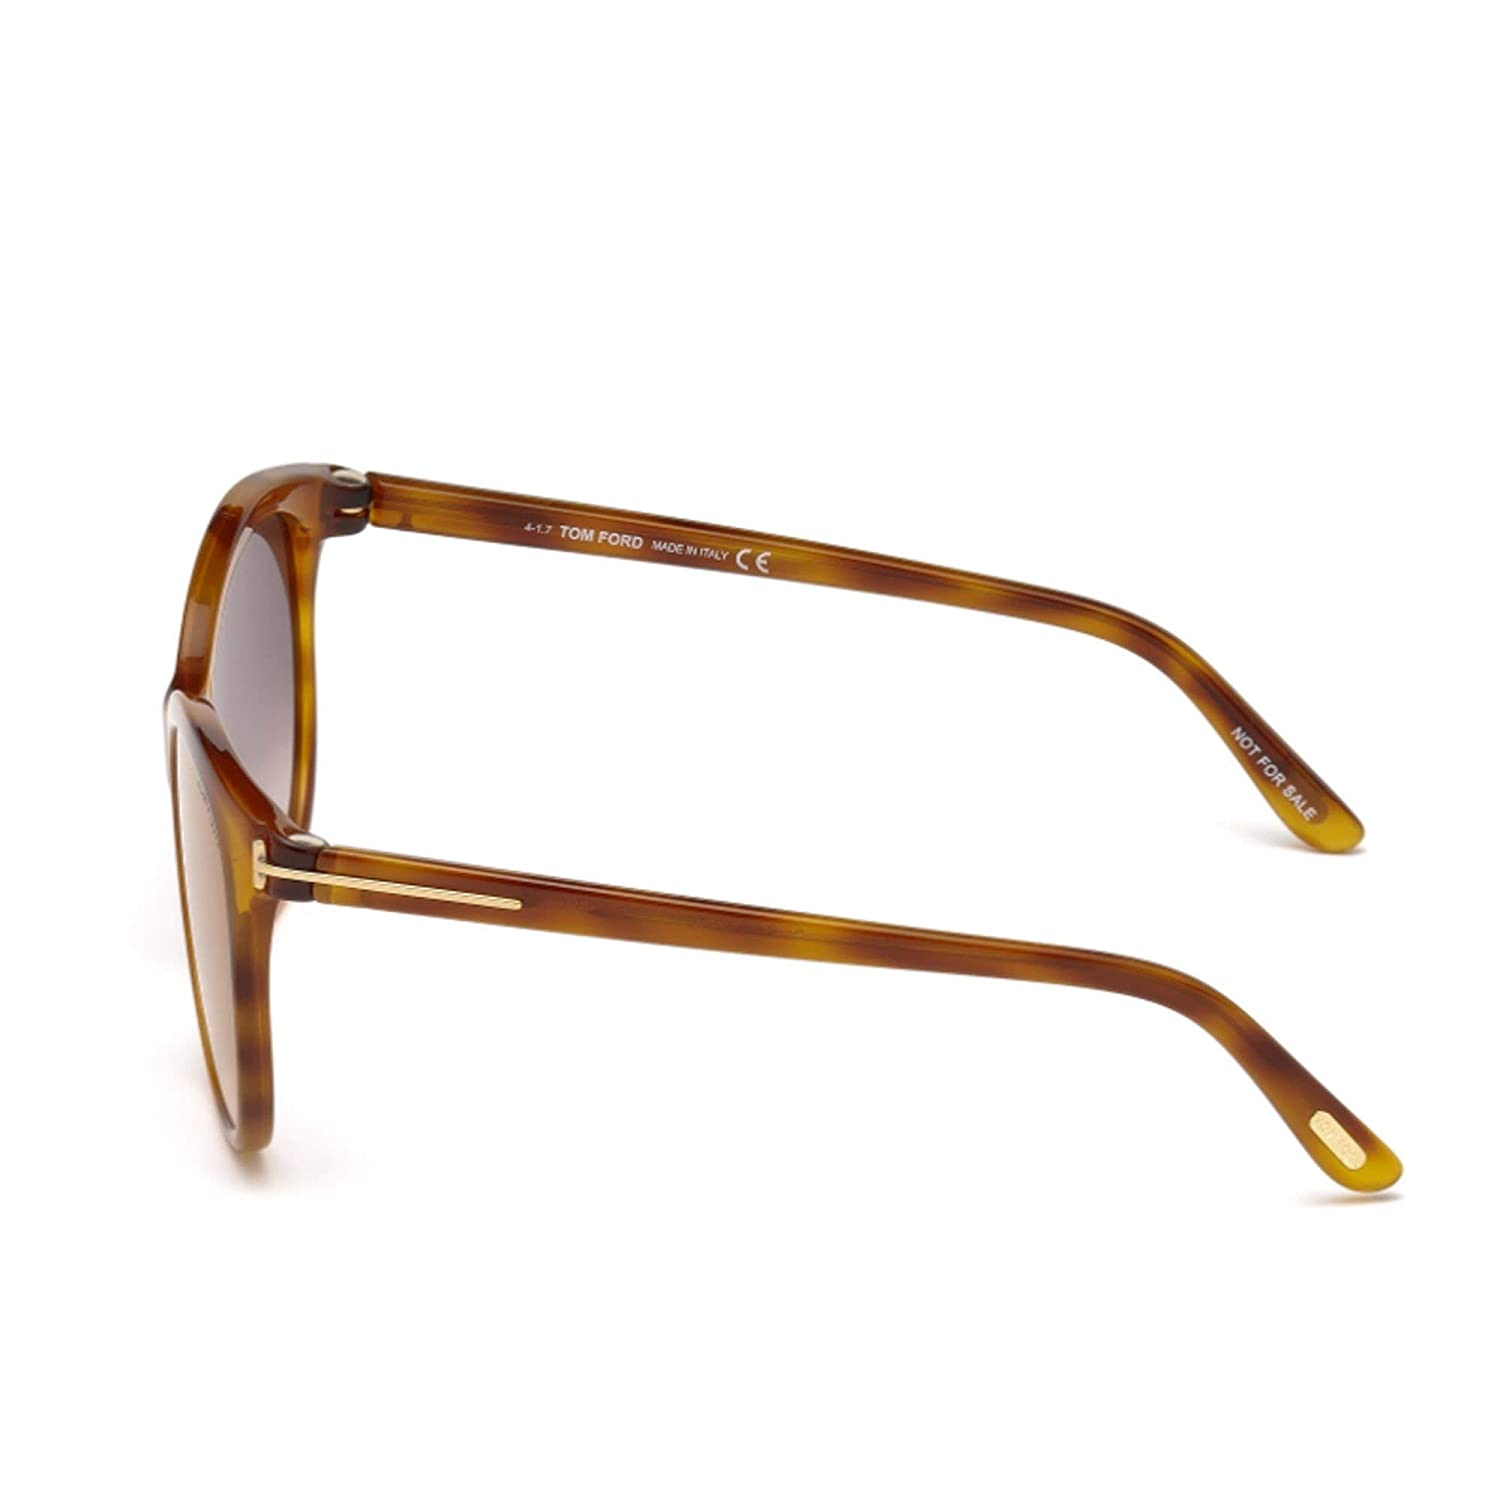 Sunglasses Tom Ford FT 0568 Geraldine Brown Mirror 02 53G Blonde Havana